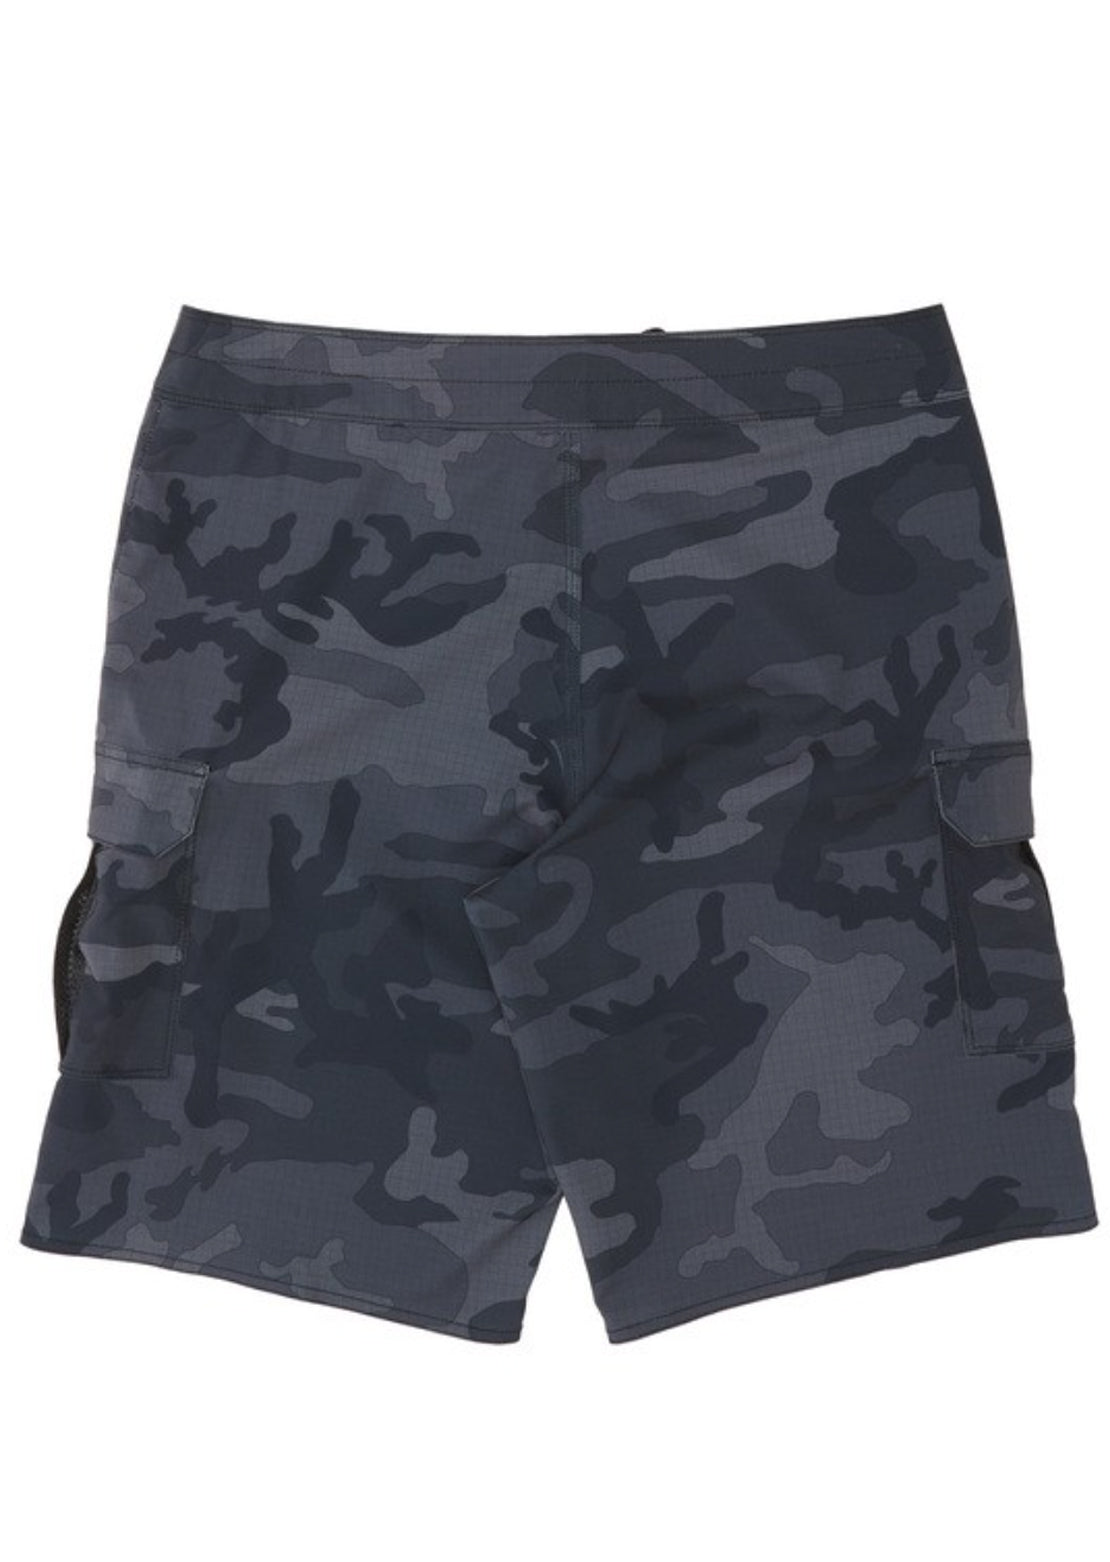 Billabong Men's Combat BBO Pro Boardshorts Black Camo